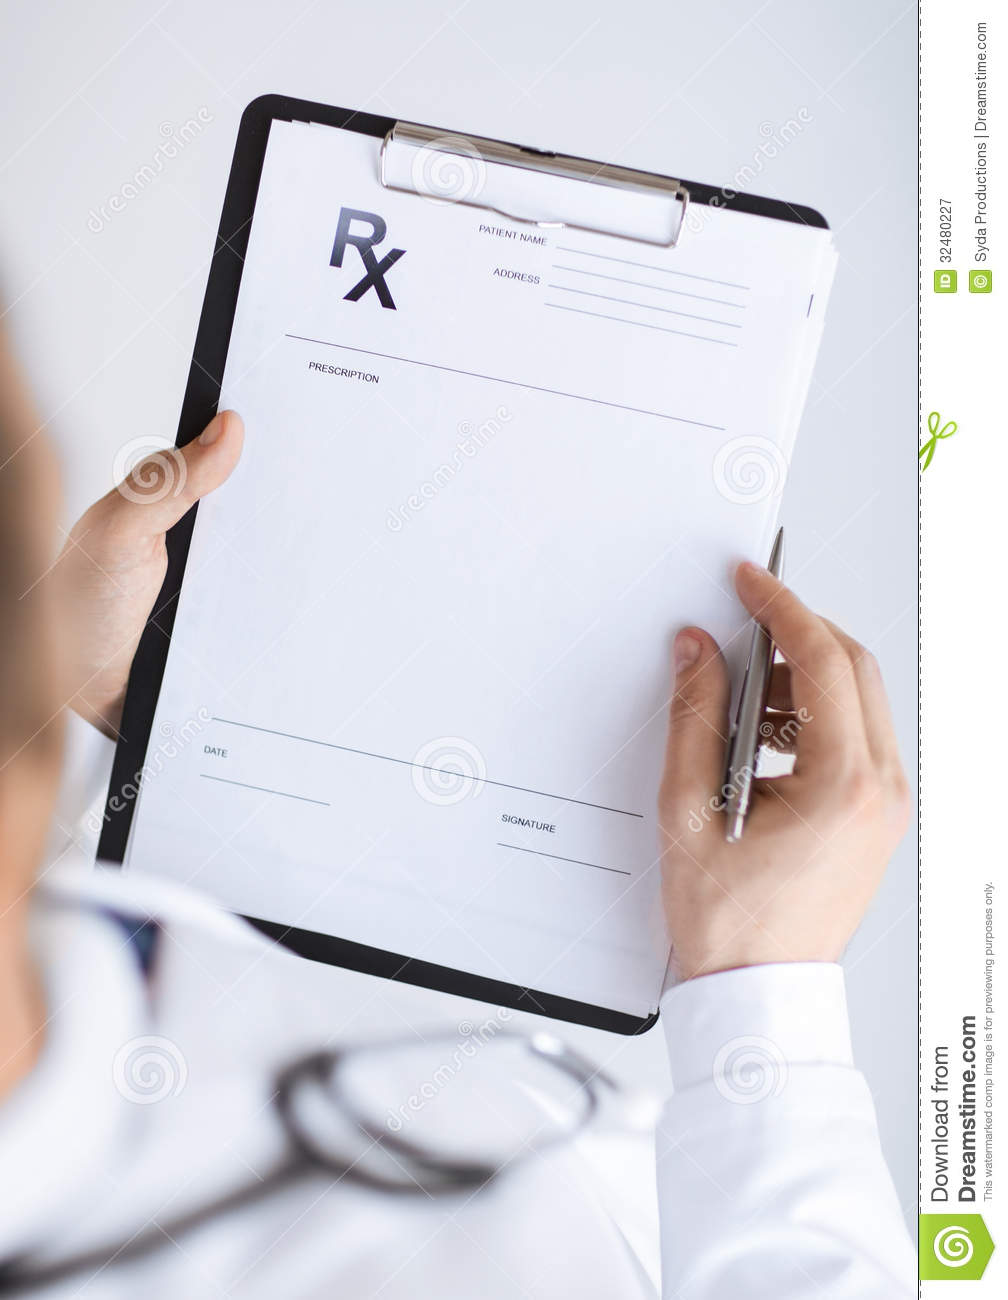 online doctors write prescriptions Find doctor on phone and get online doctor consultations and prescriptions we at telerainmd provide certified telehealth services at just affordable price.